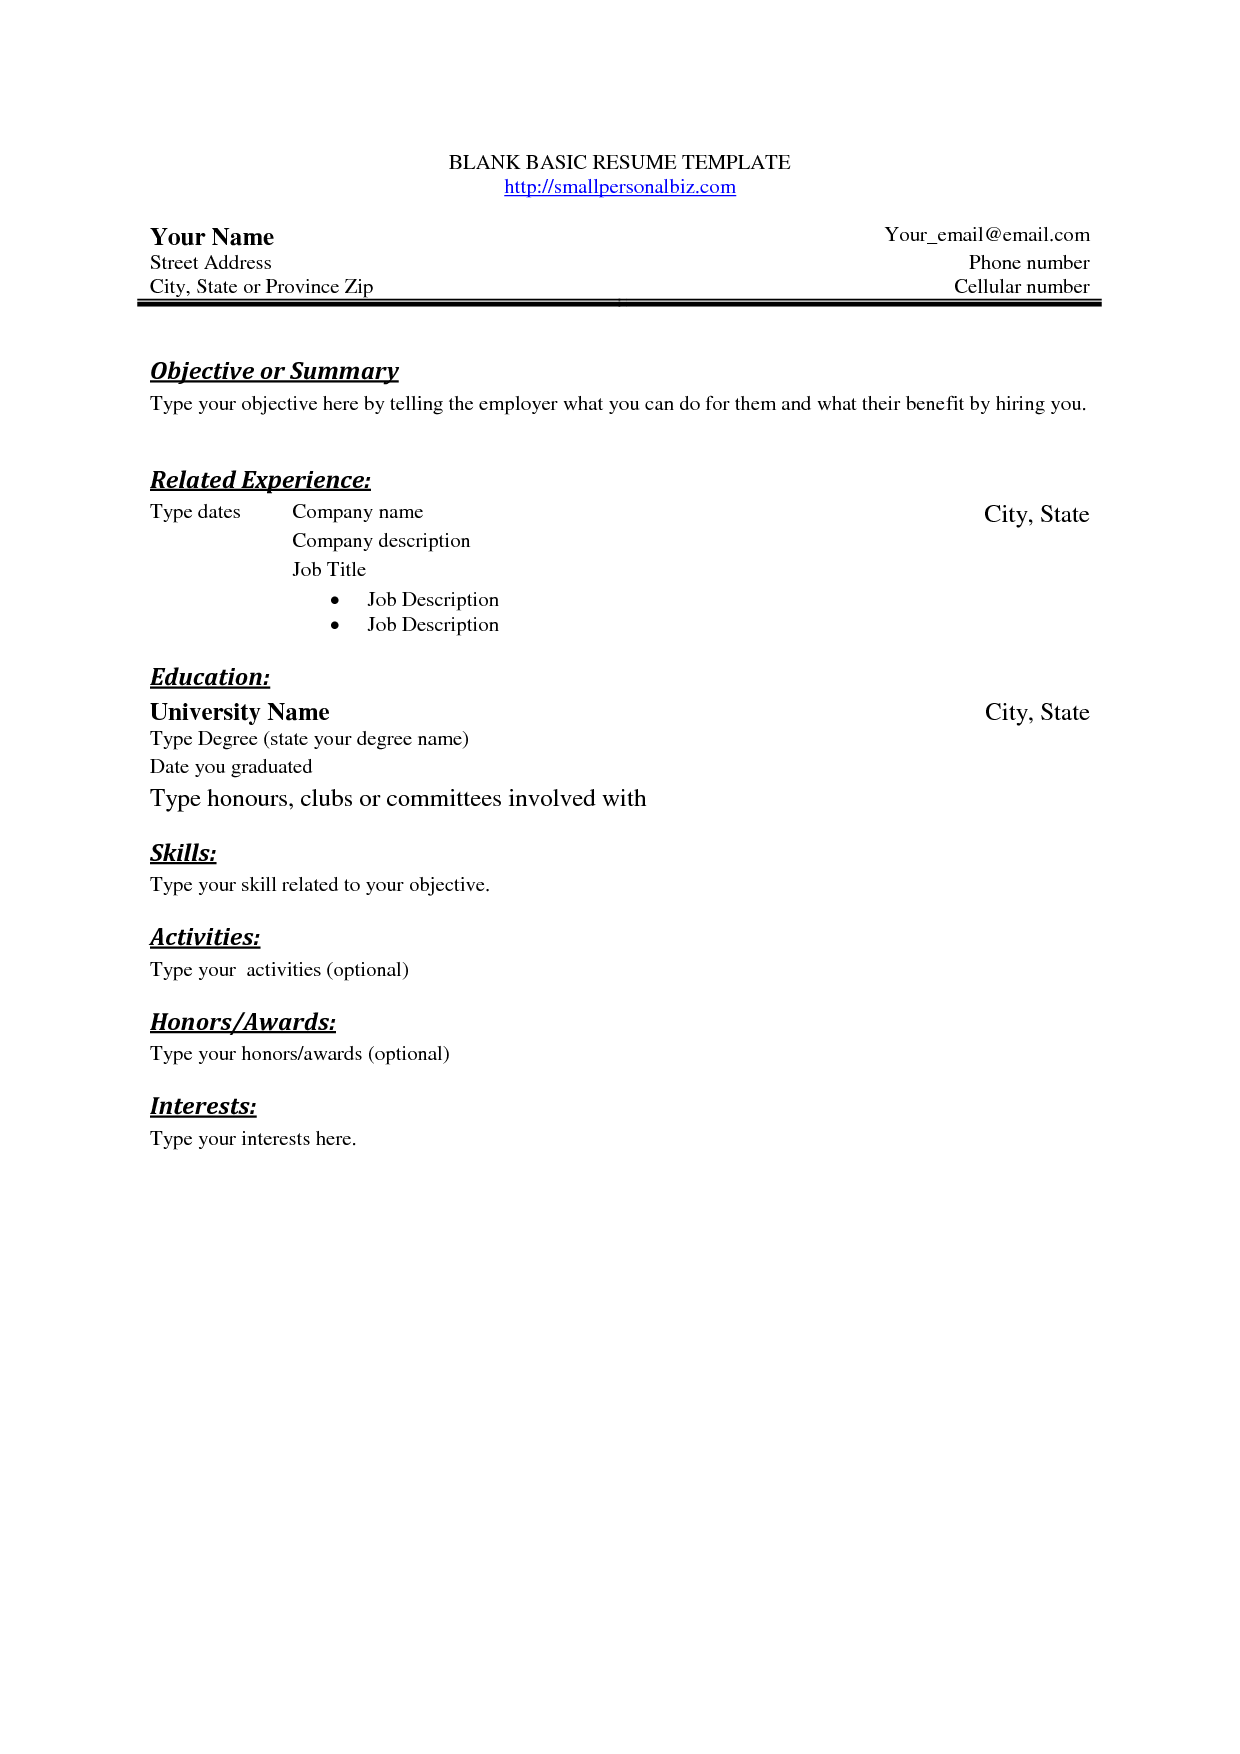 Blank Resume Template Best Stylist And Luxury Simple Resume Layout 10 Free Basic Blank Resume